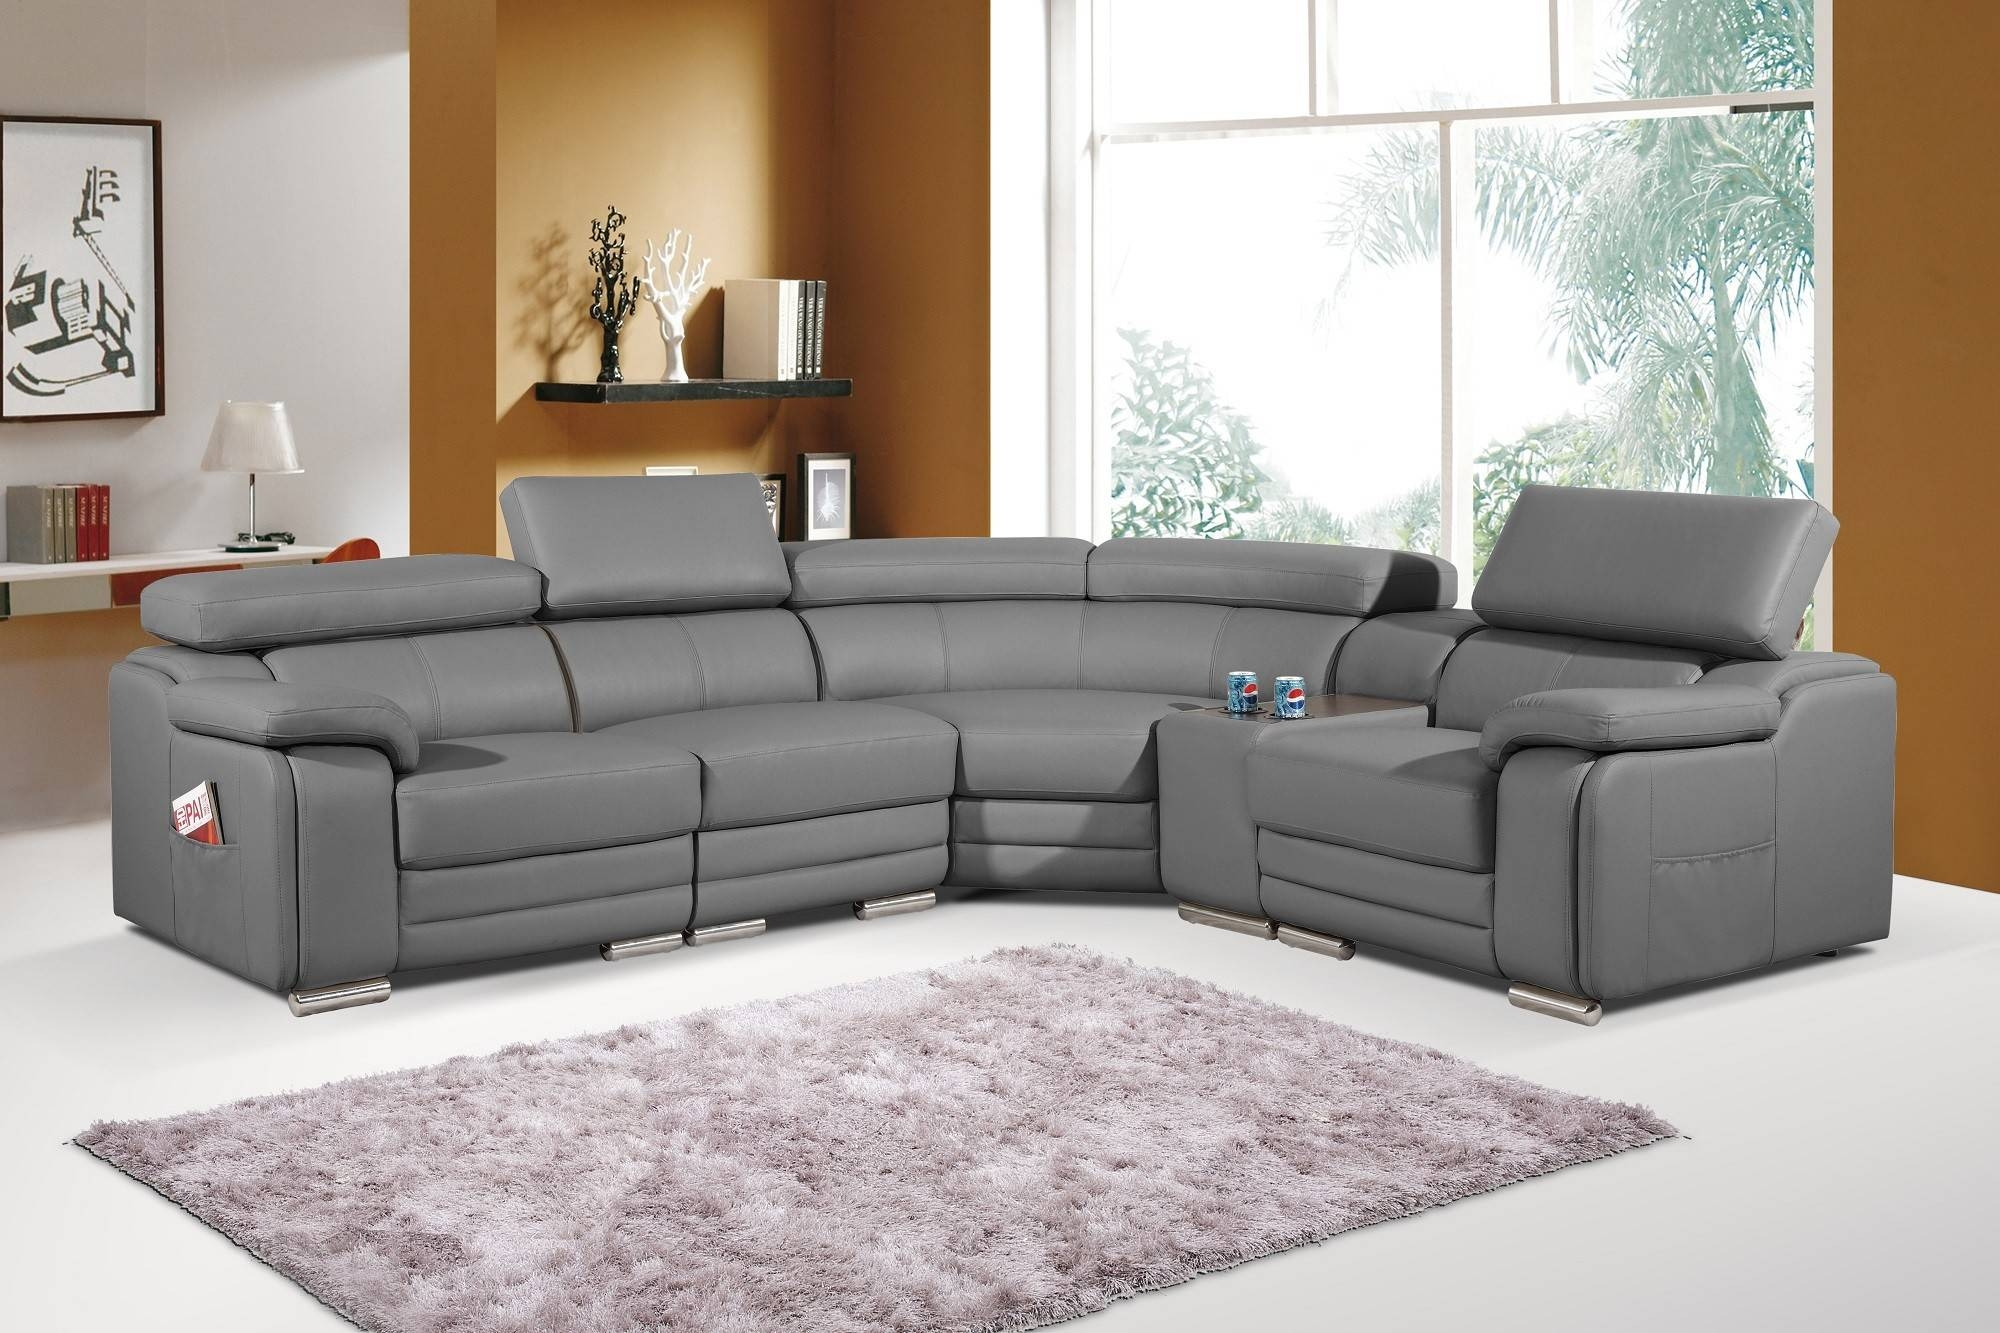 Sofas Center : Leather Corner Sofas Sofa Uk Clearanceleather within Leather Corner Sofas (Image 29 of 30)